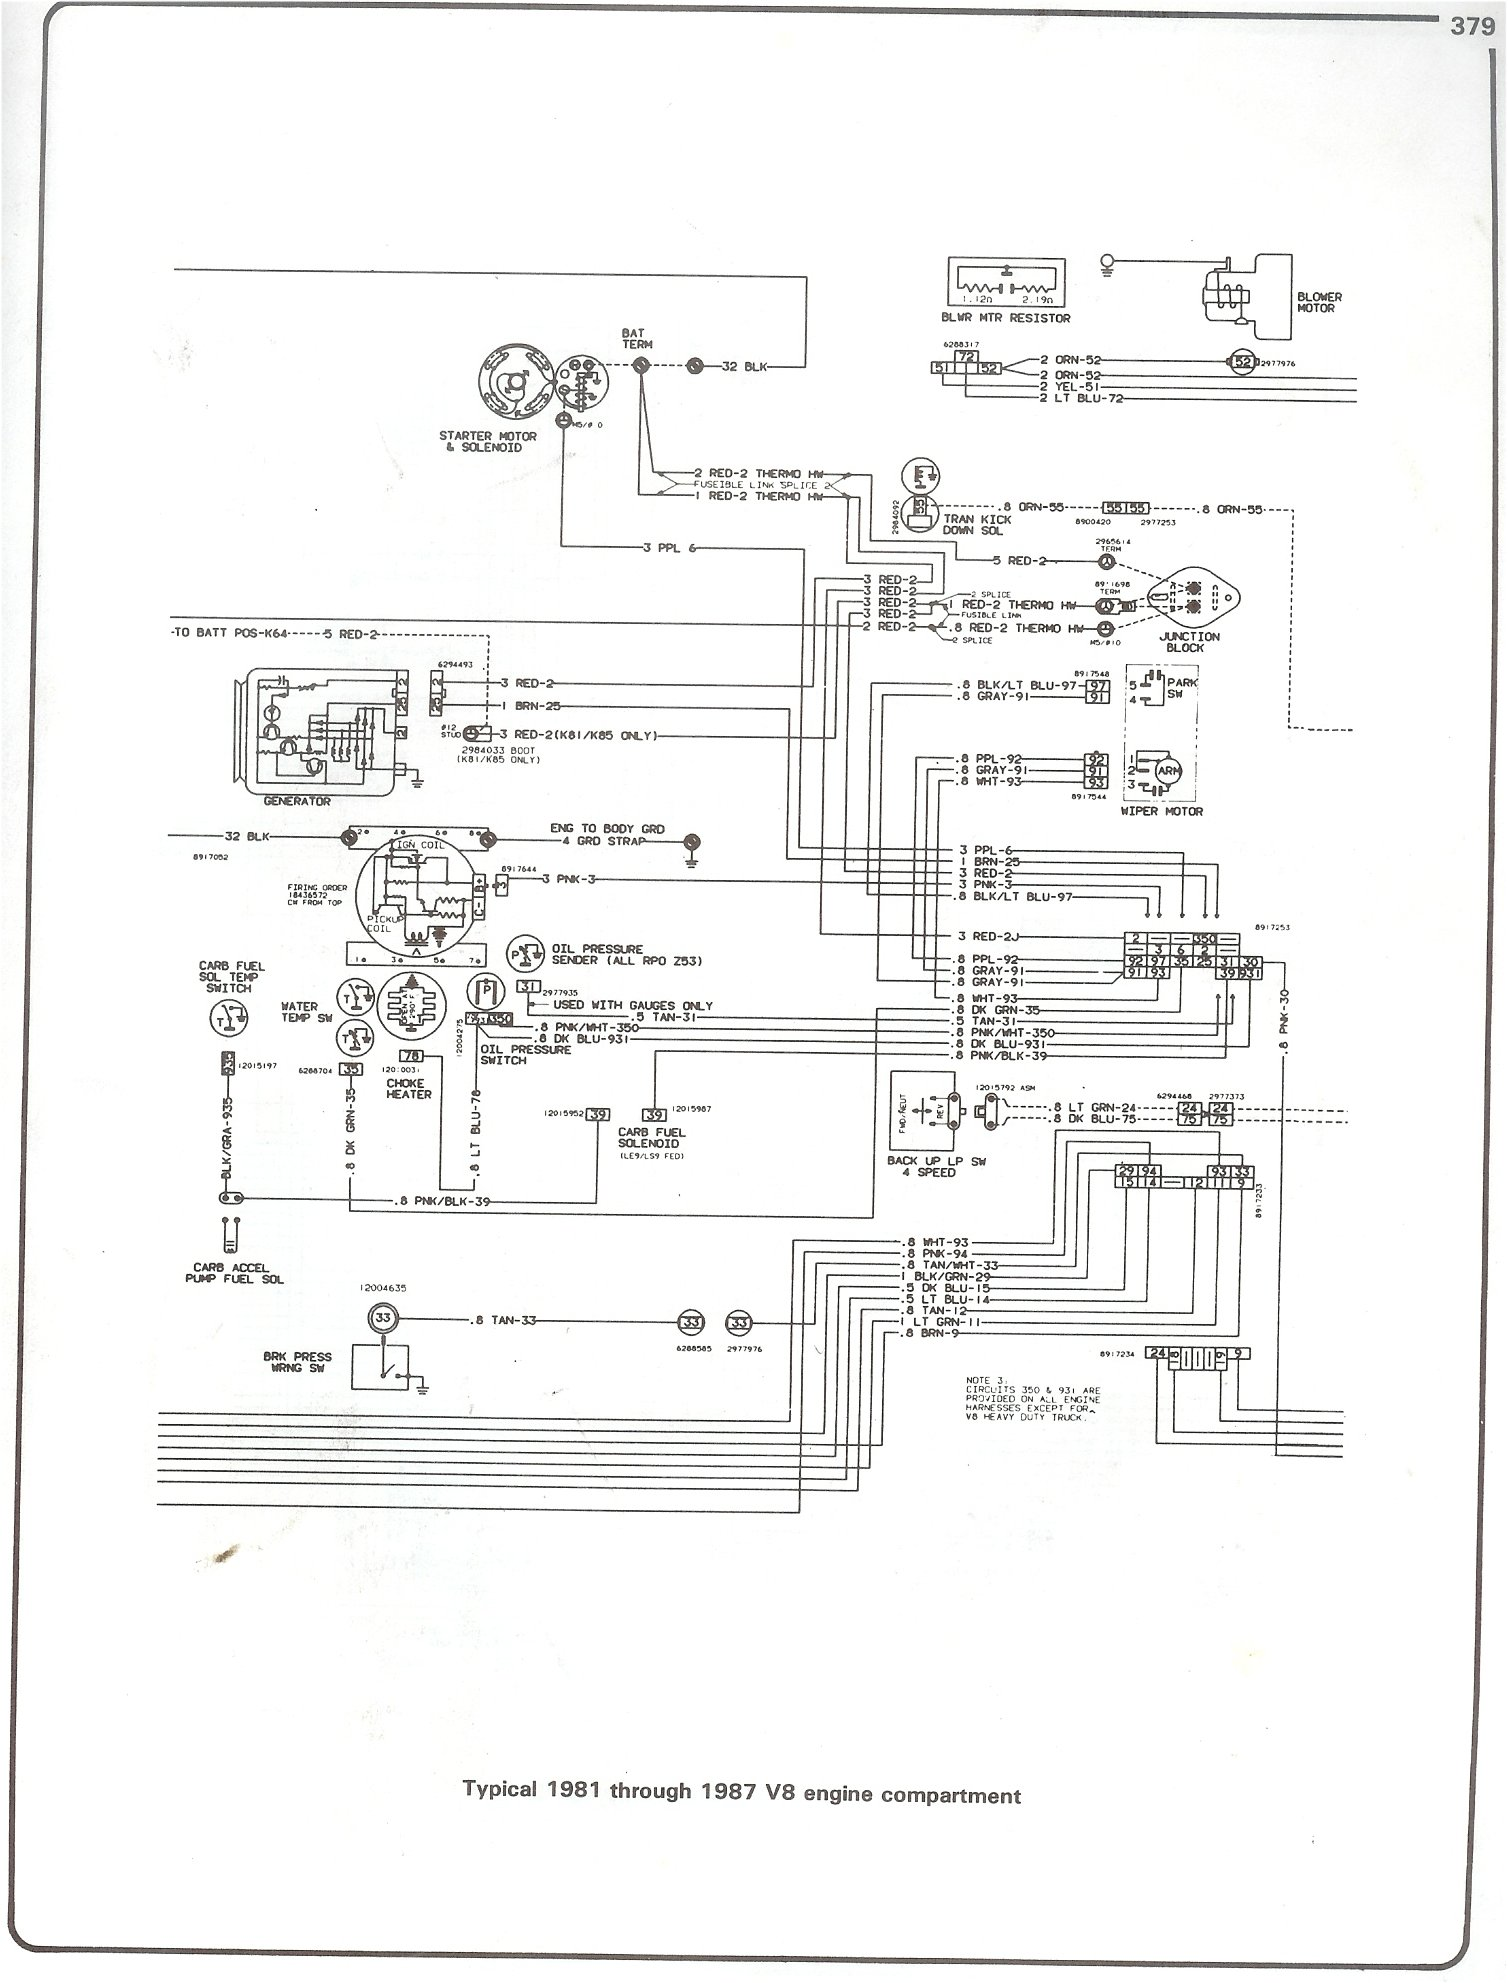 81 87_V8_engine complete 73 87 wiring diagrams  at suagrazia.org